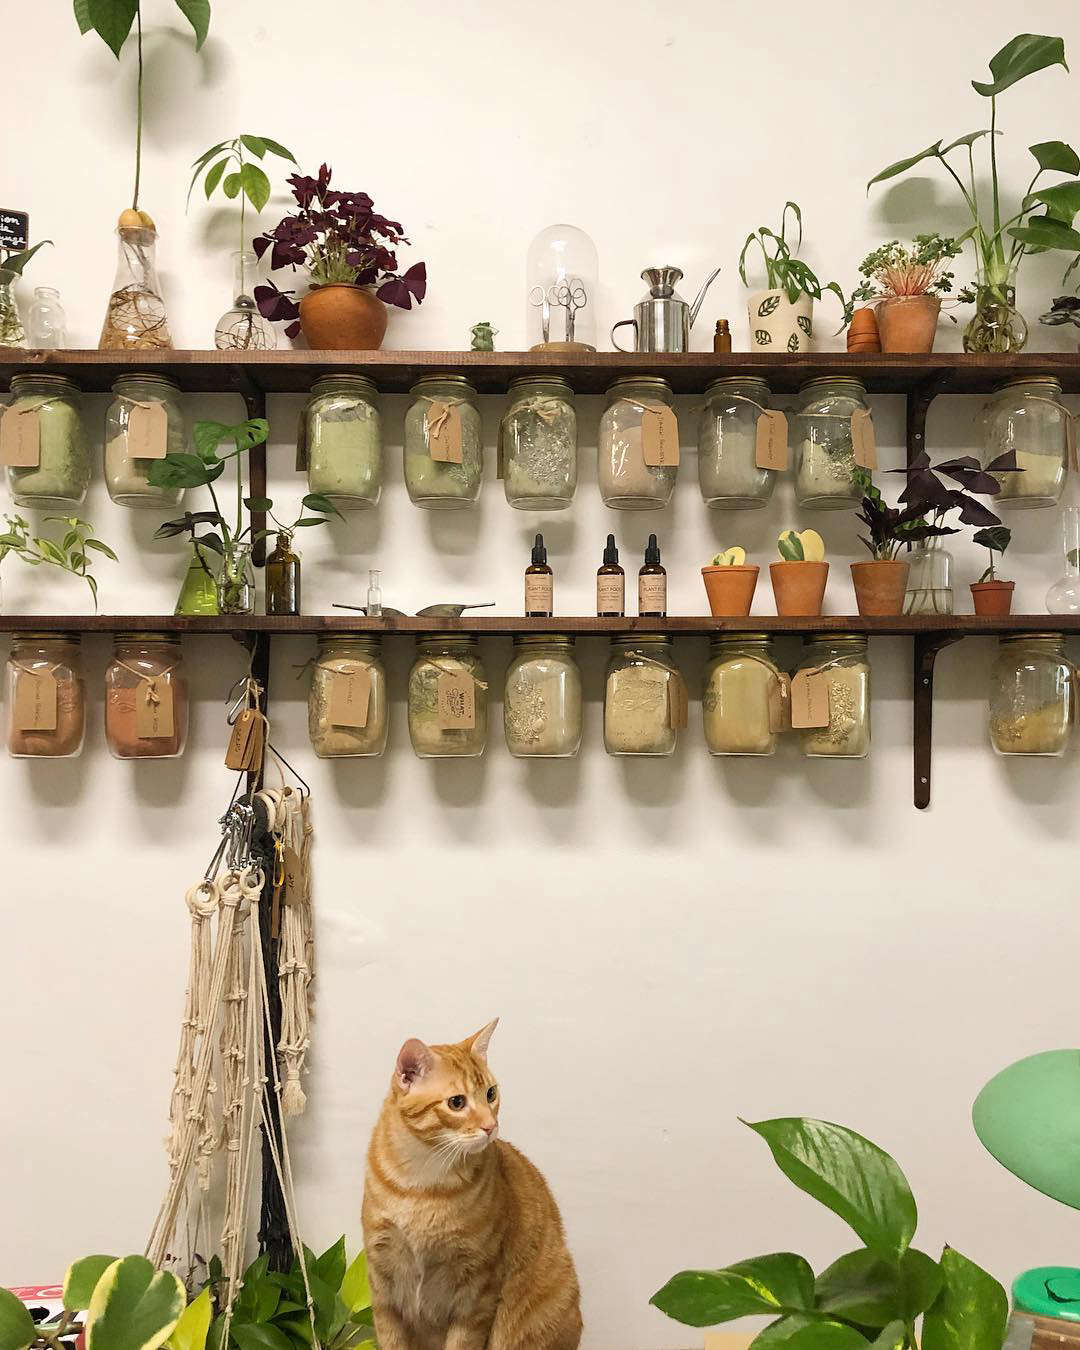 Powdered hair dyes made from plants, flowers, and bark are stored workbench-style in Mason jars secured under the shelves by their lids. In her spare hours, you can find Justine making her own macramé plant hangers.